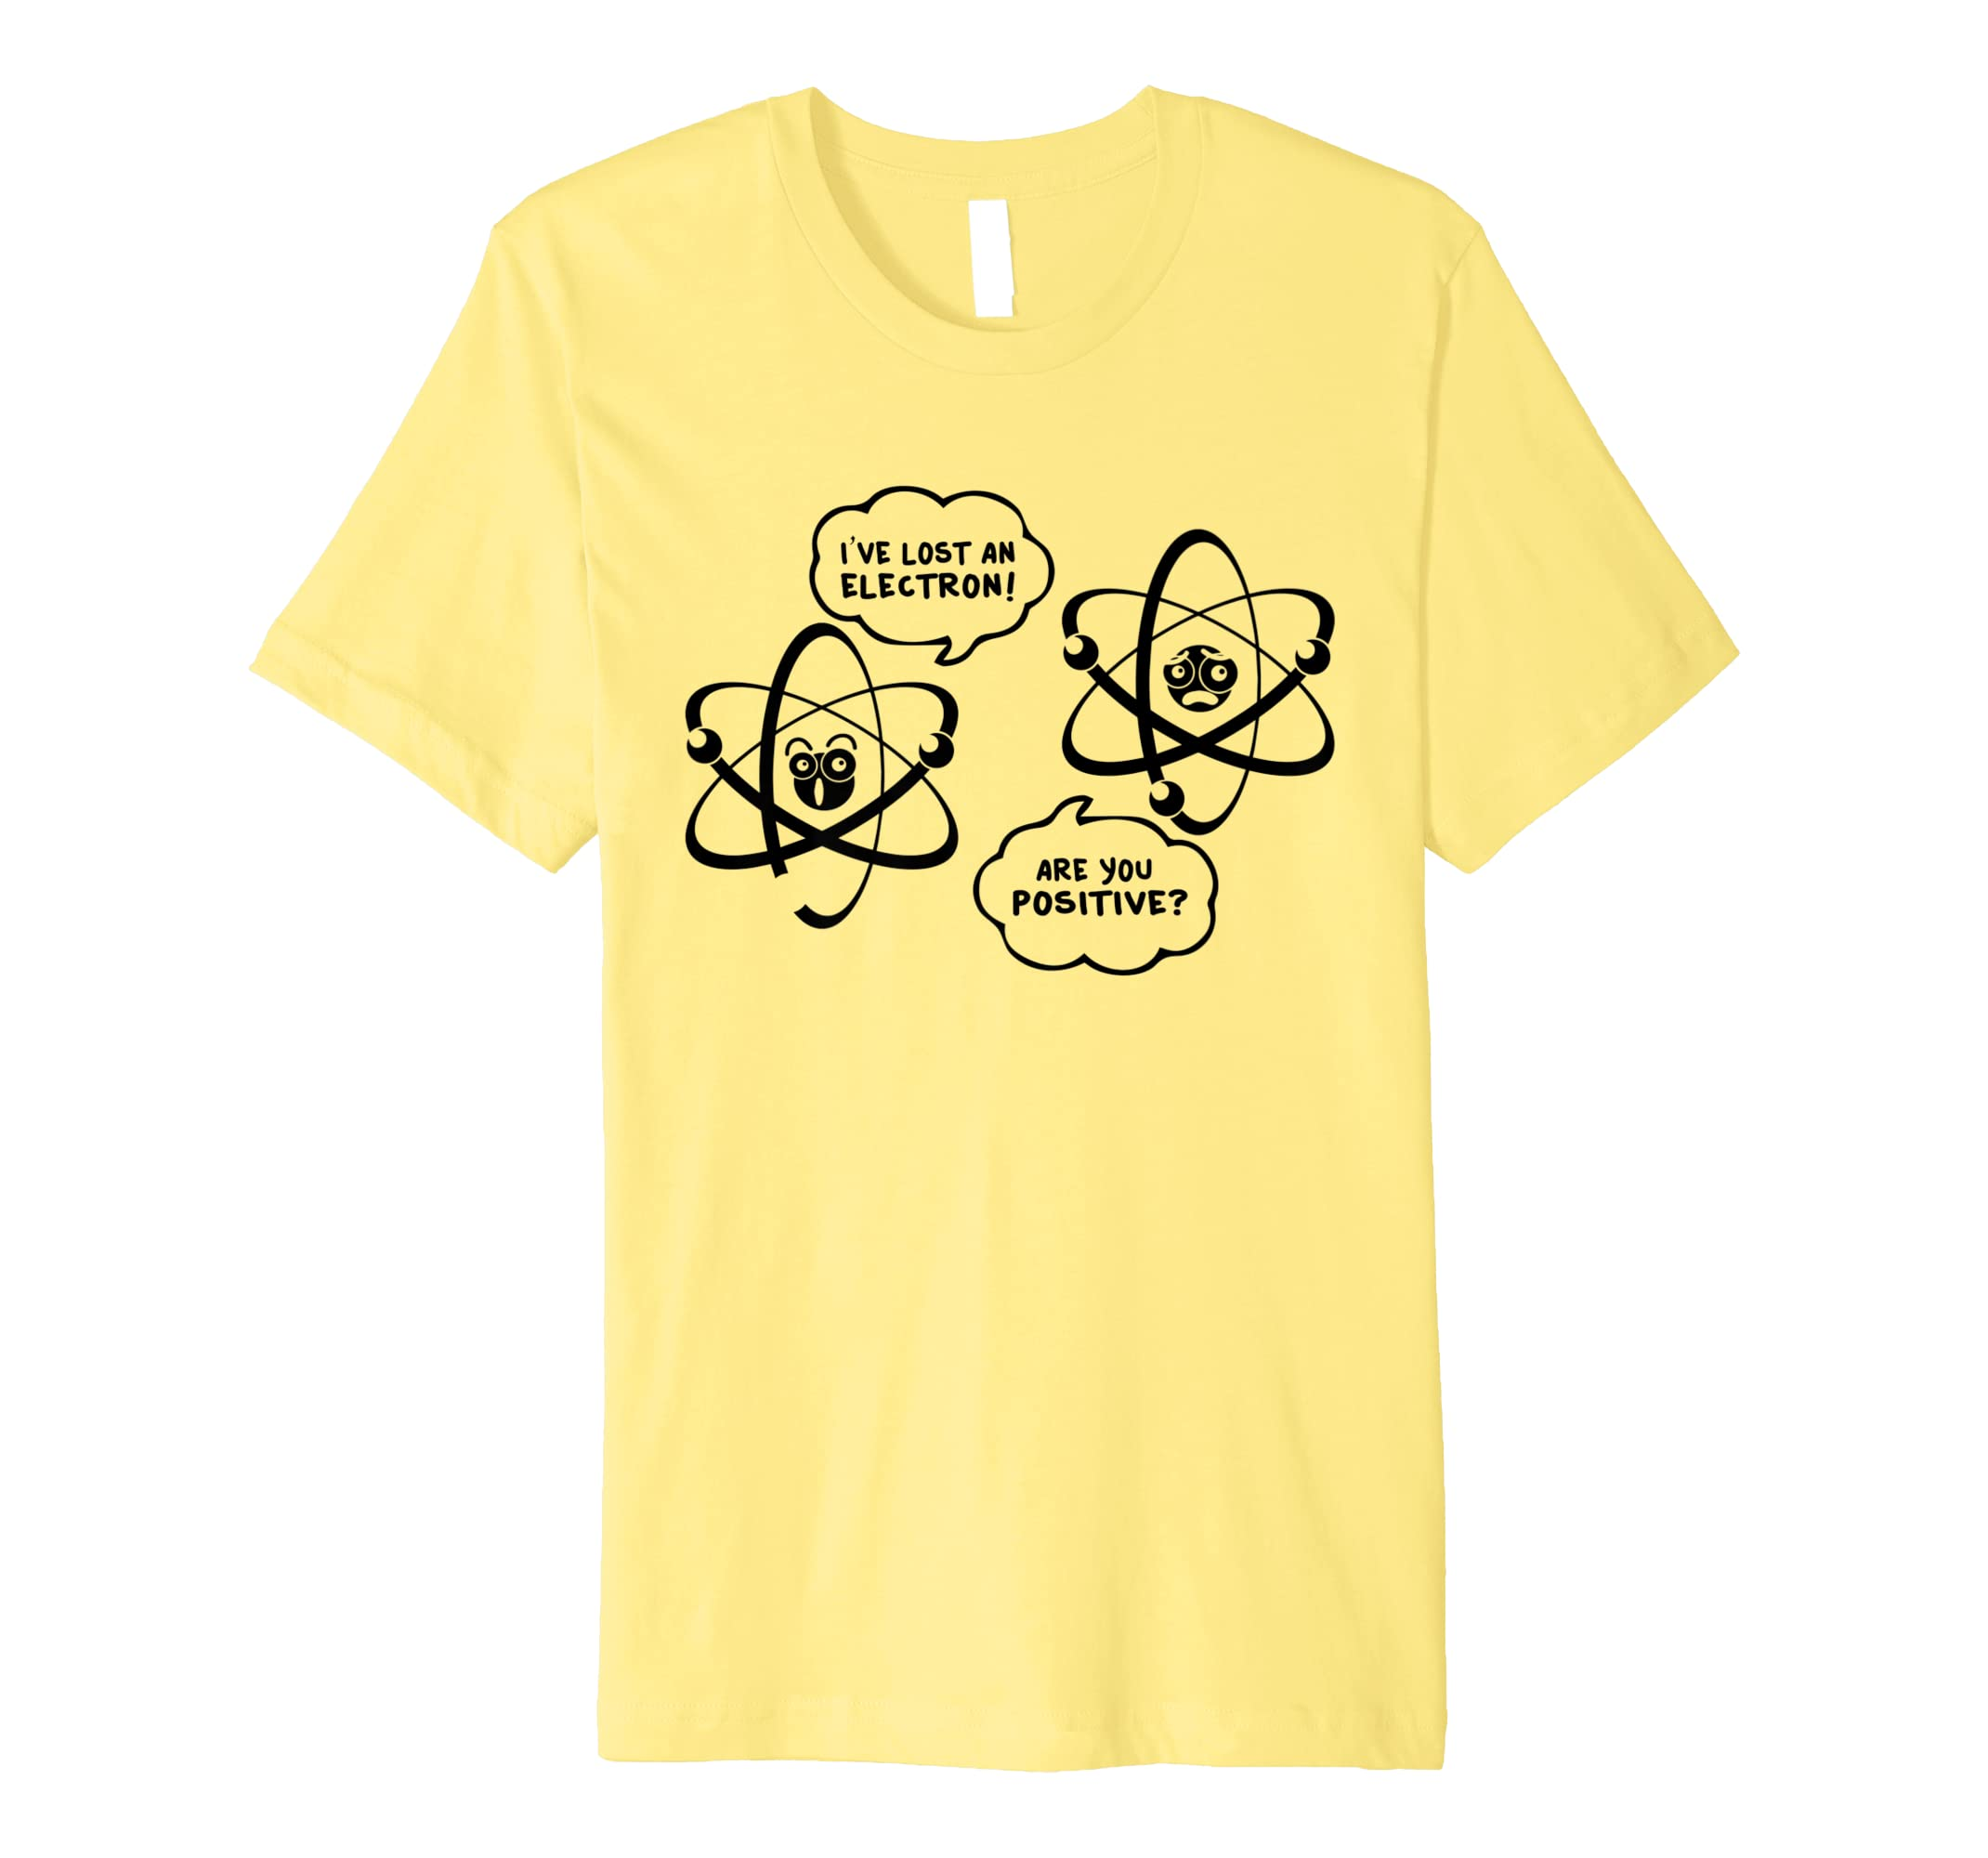 f8bc9635e Amazon.com: I've Lost An Electron - Are You Positive Funny Chemist Shirt:  Clothing